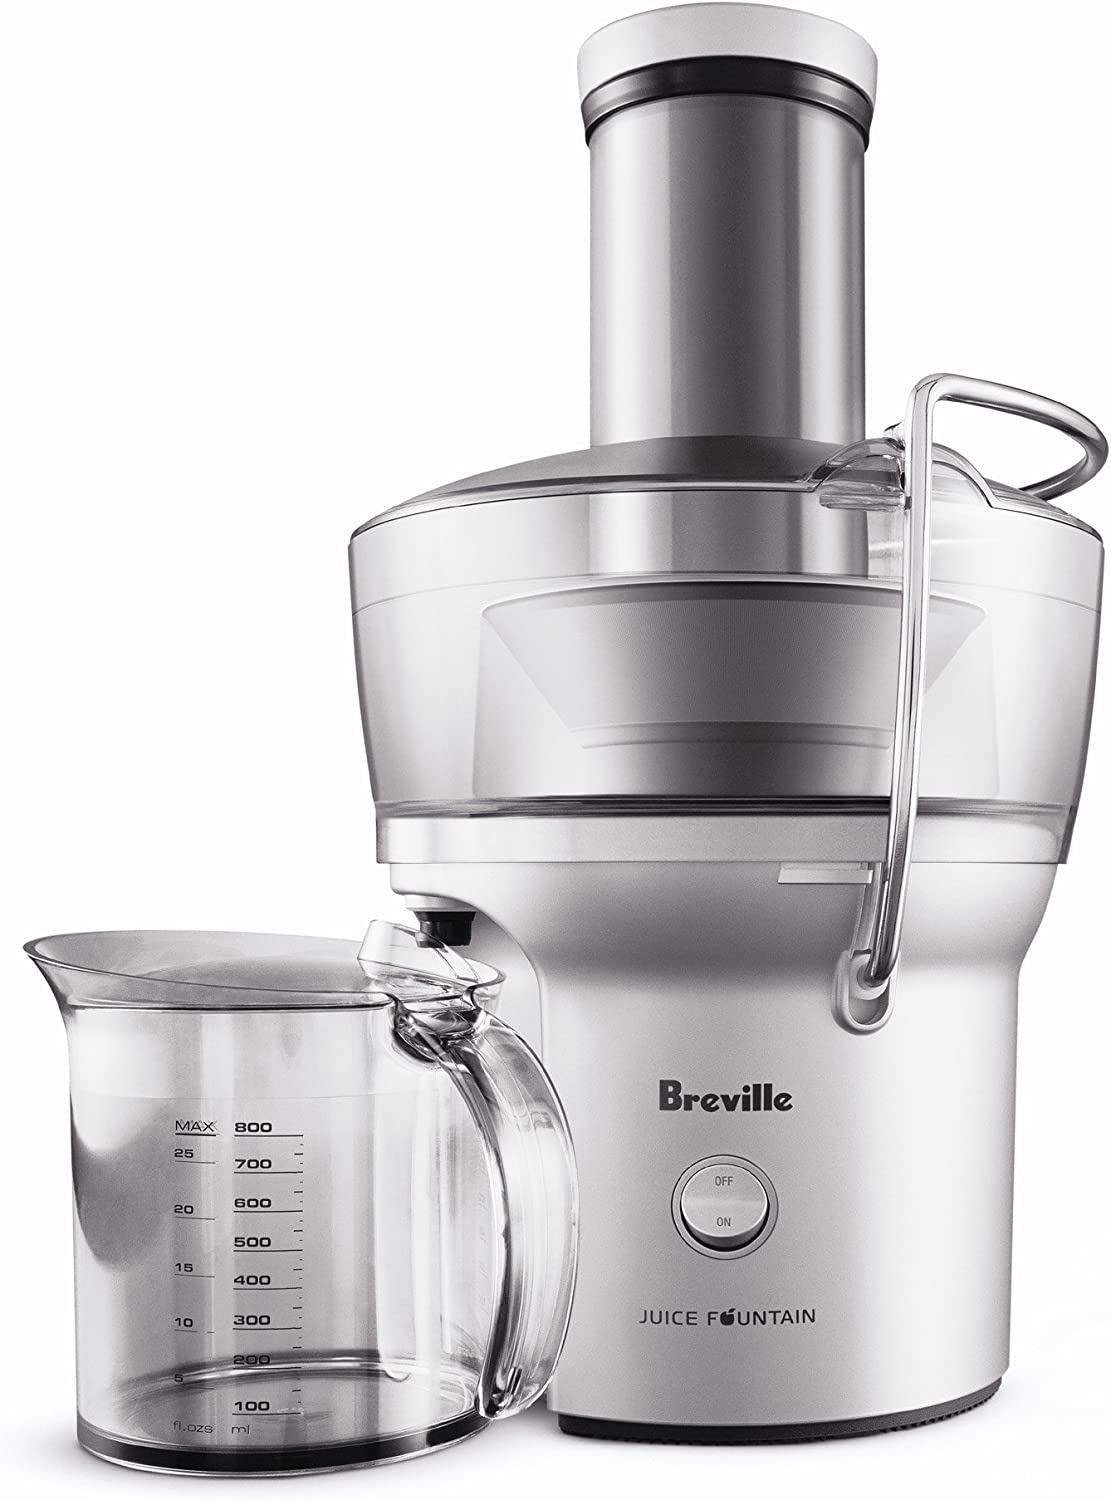 Breville BJE200XL Juice Fountain Compact Review: Good Entry-Level Juicer